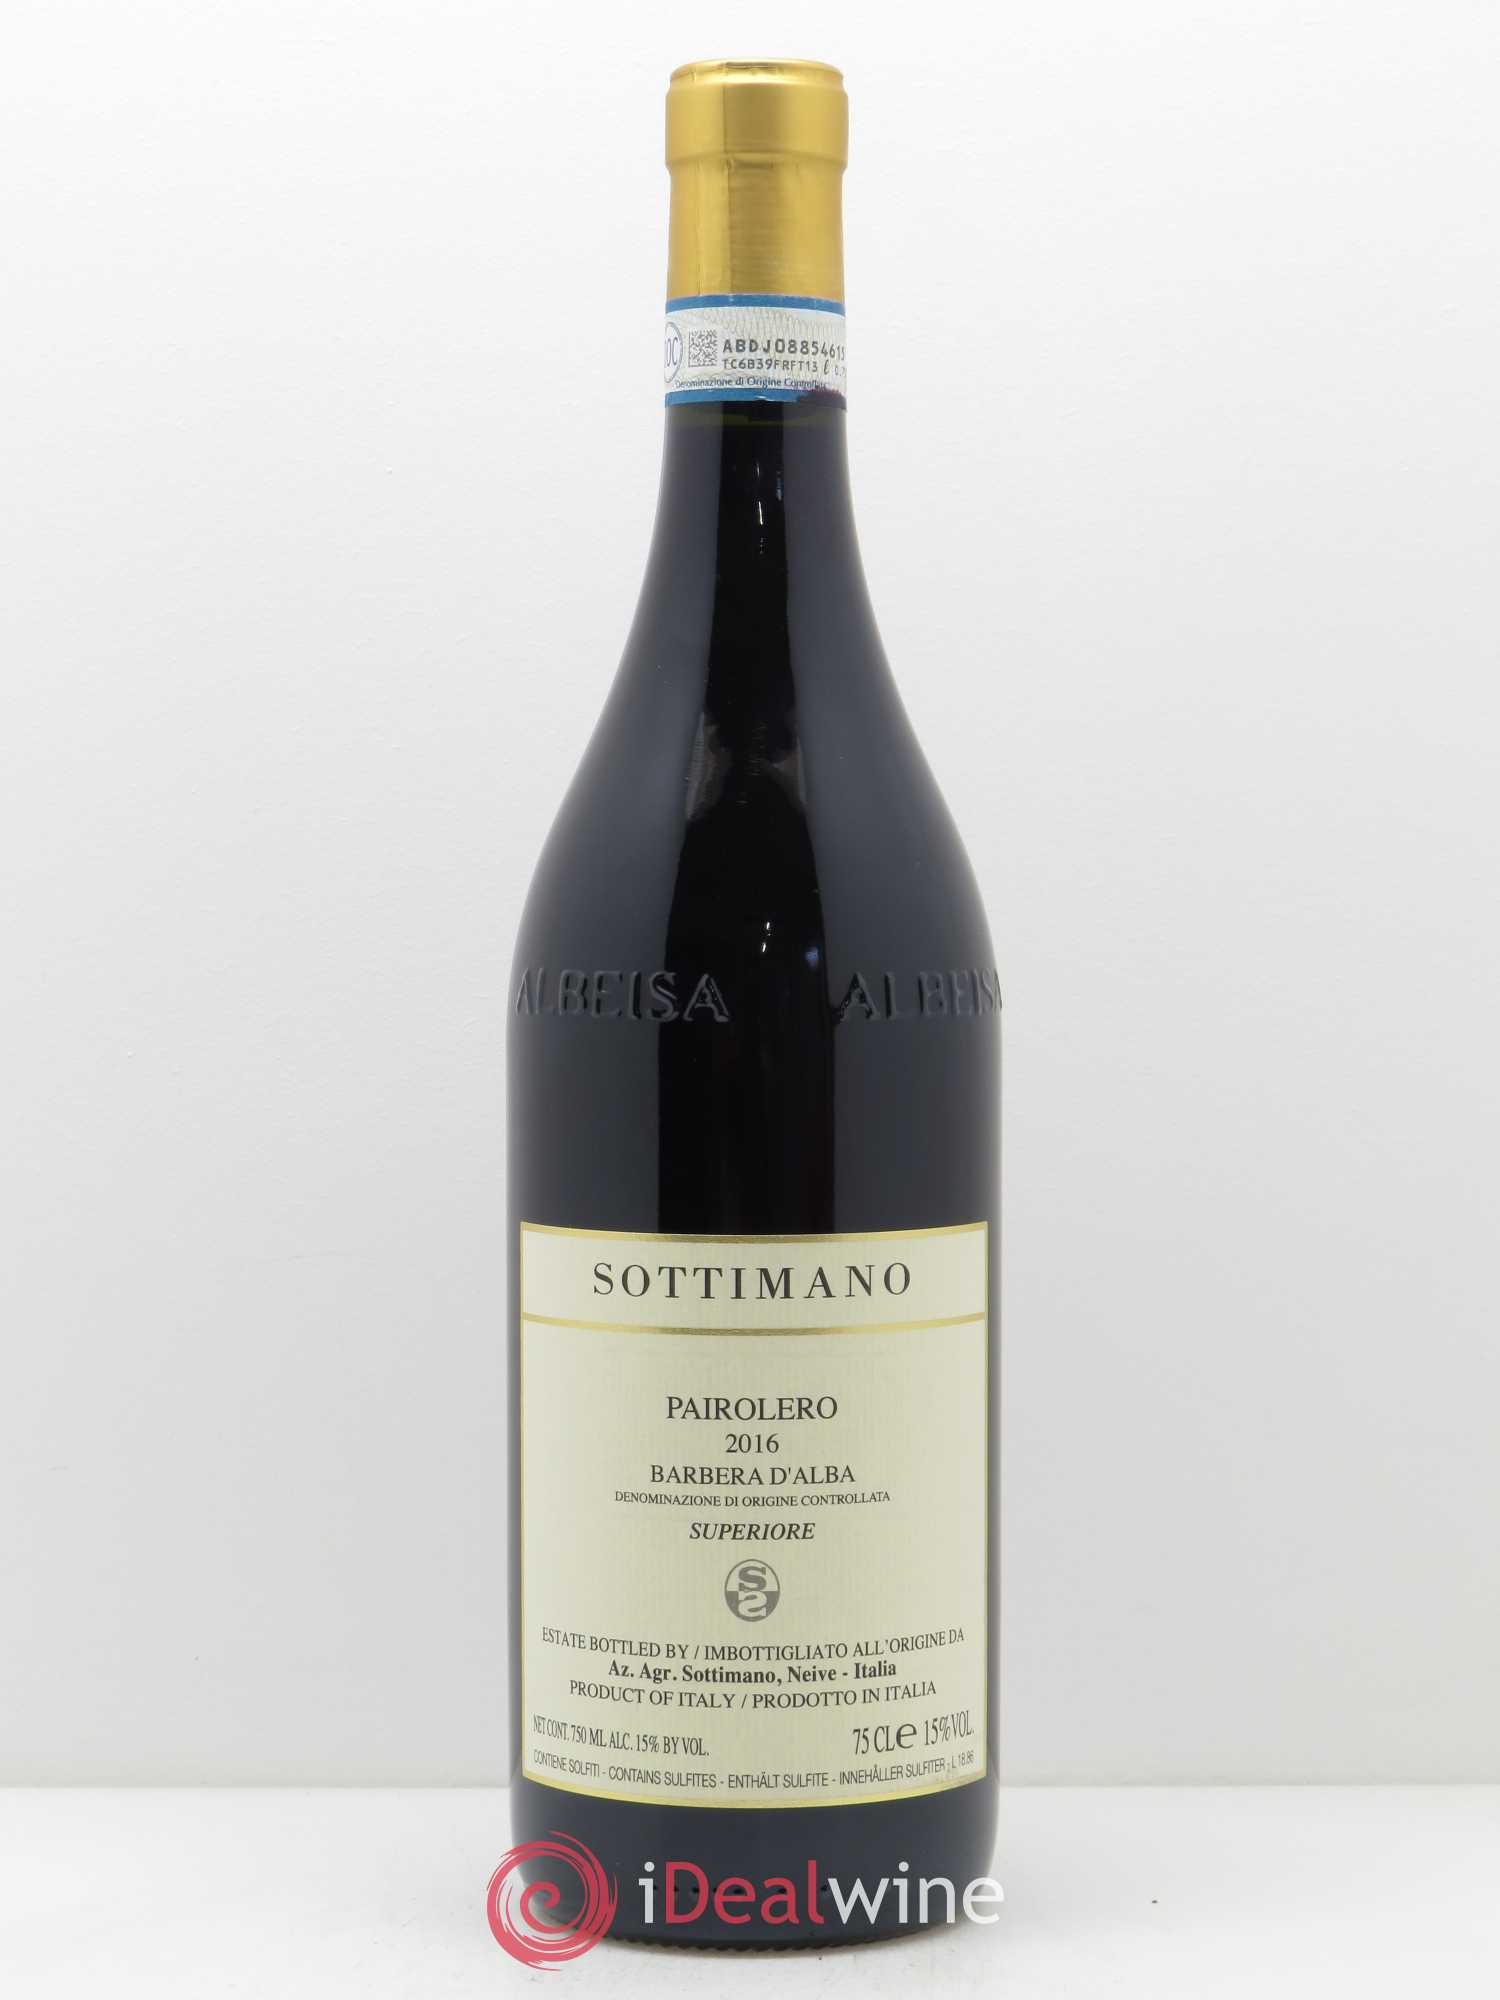 Barbera d'Alba Pairolero Sottimano  2016 - Lot of 1 Bottle